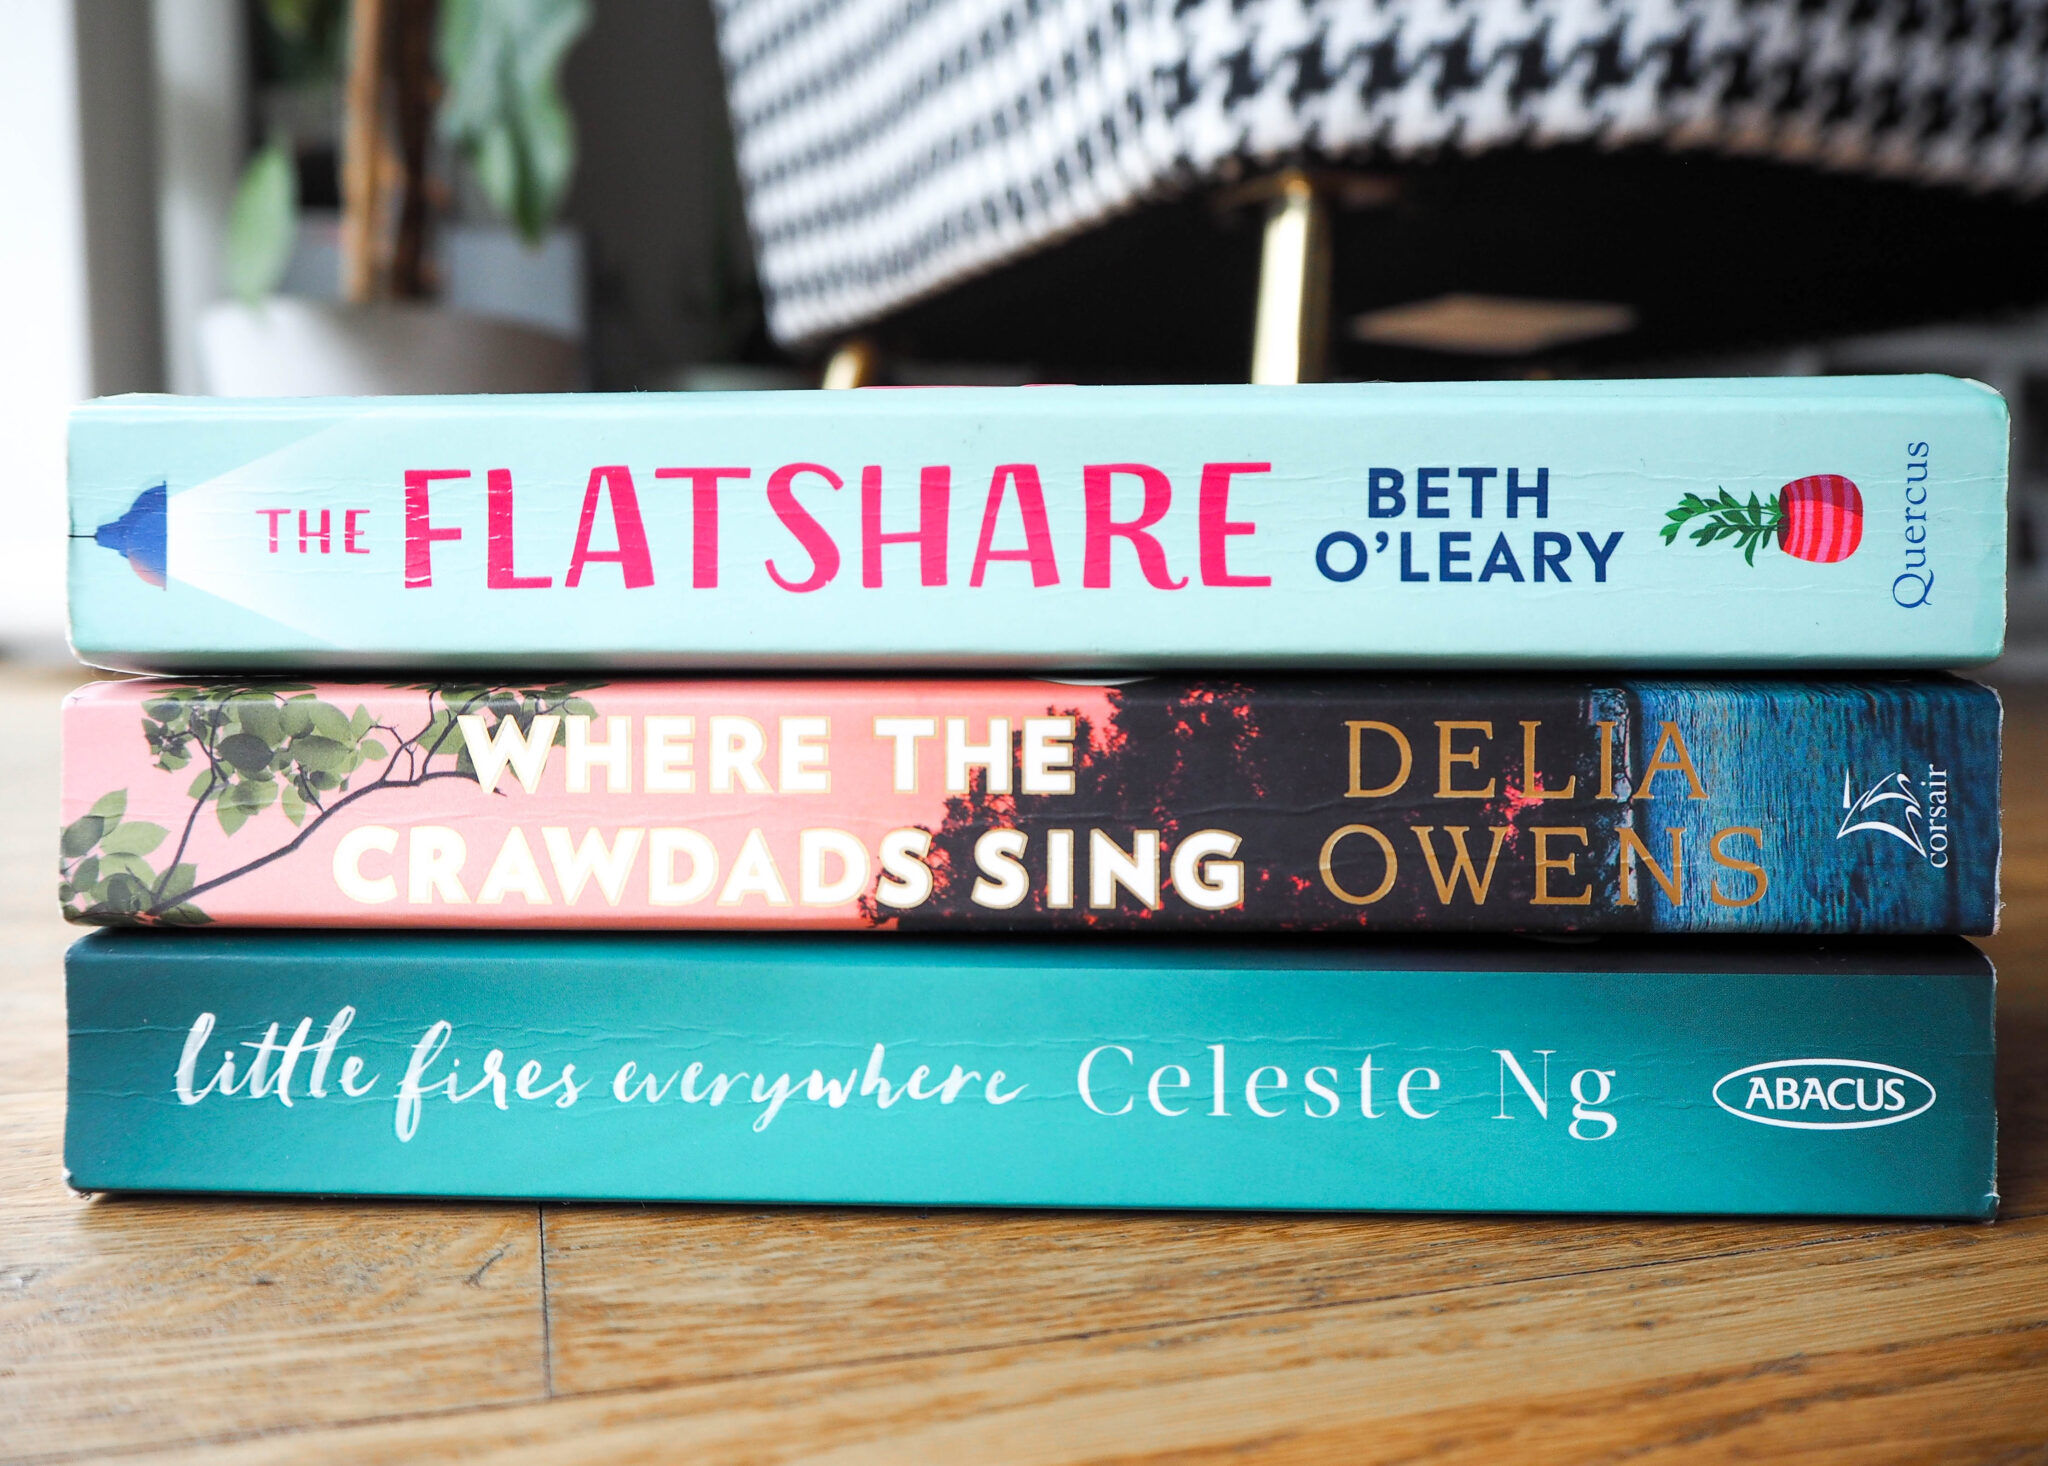 flat share beth o'leary where the crawdads sing delia owens little fires everywhere celeste ng lockdown reading